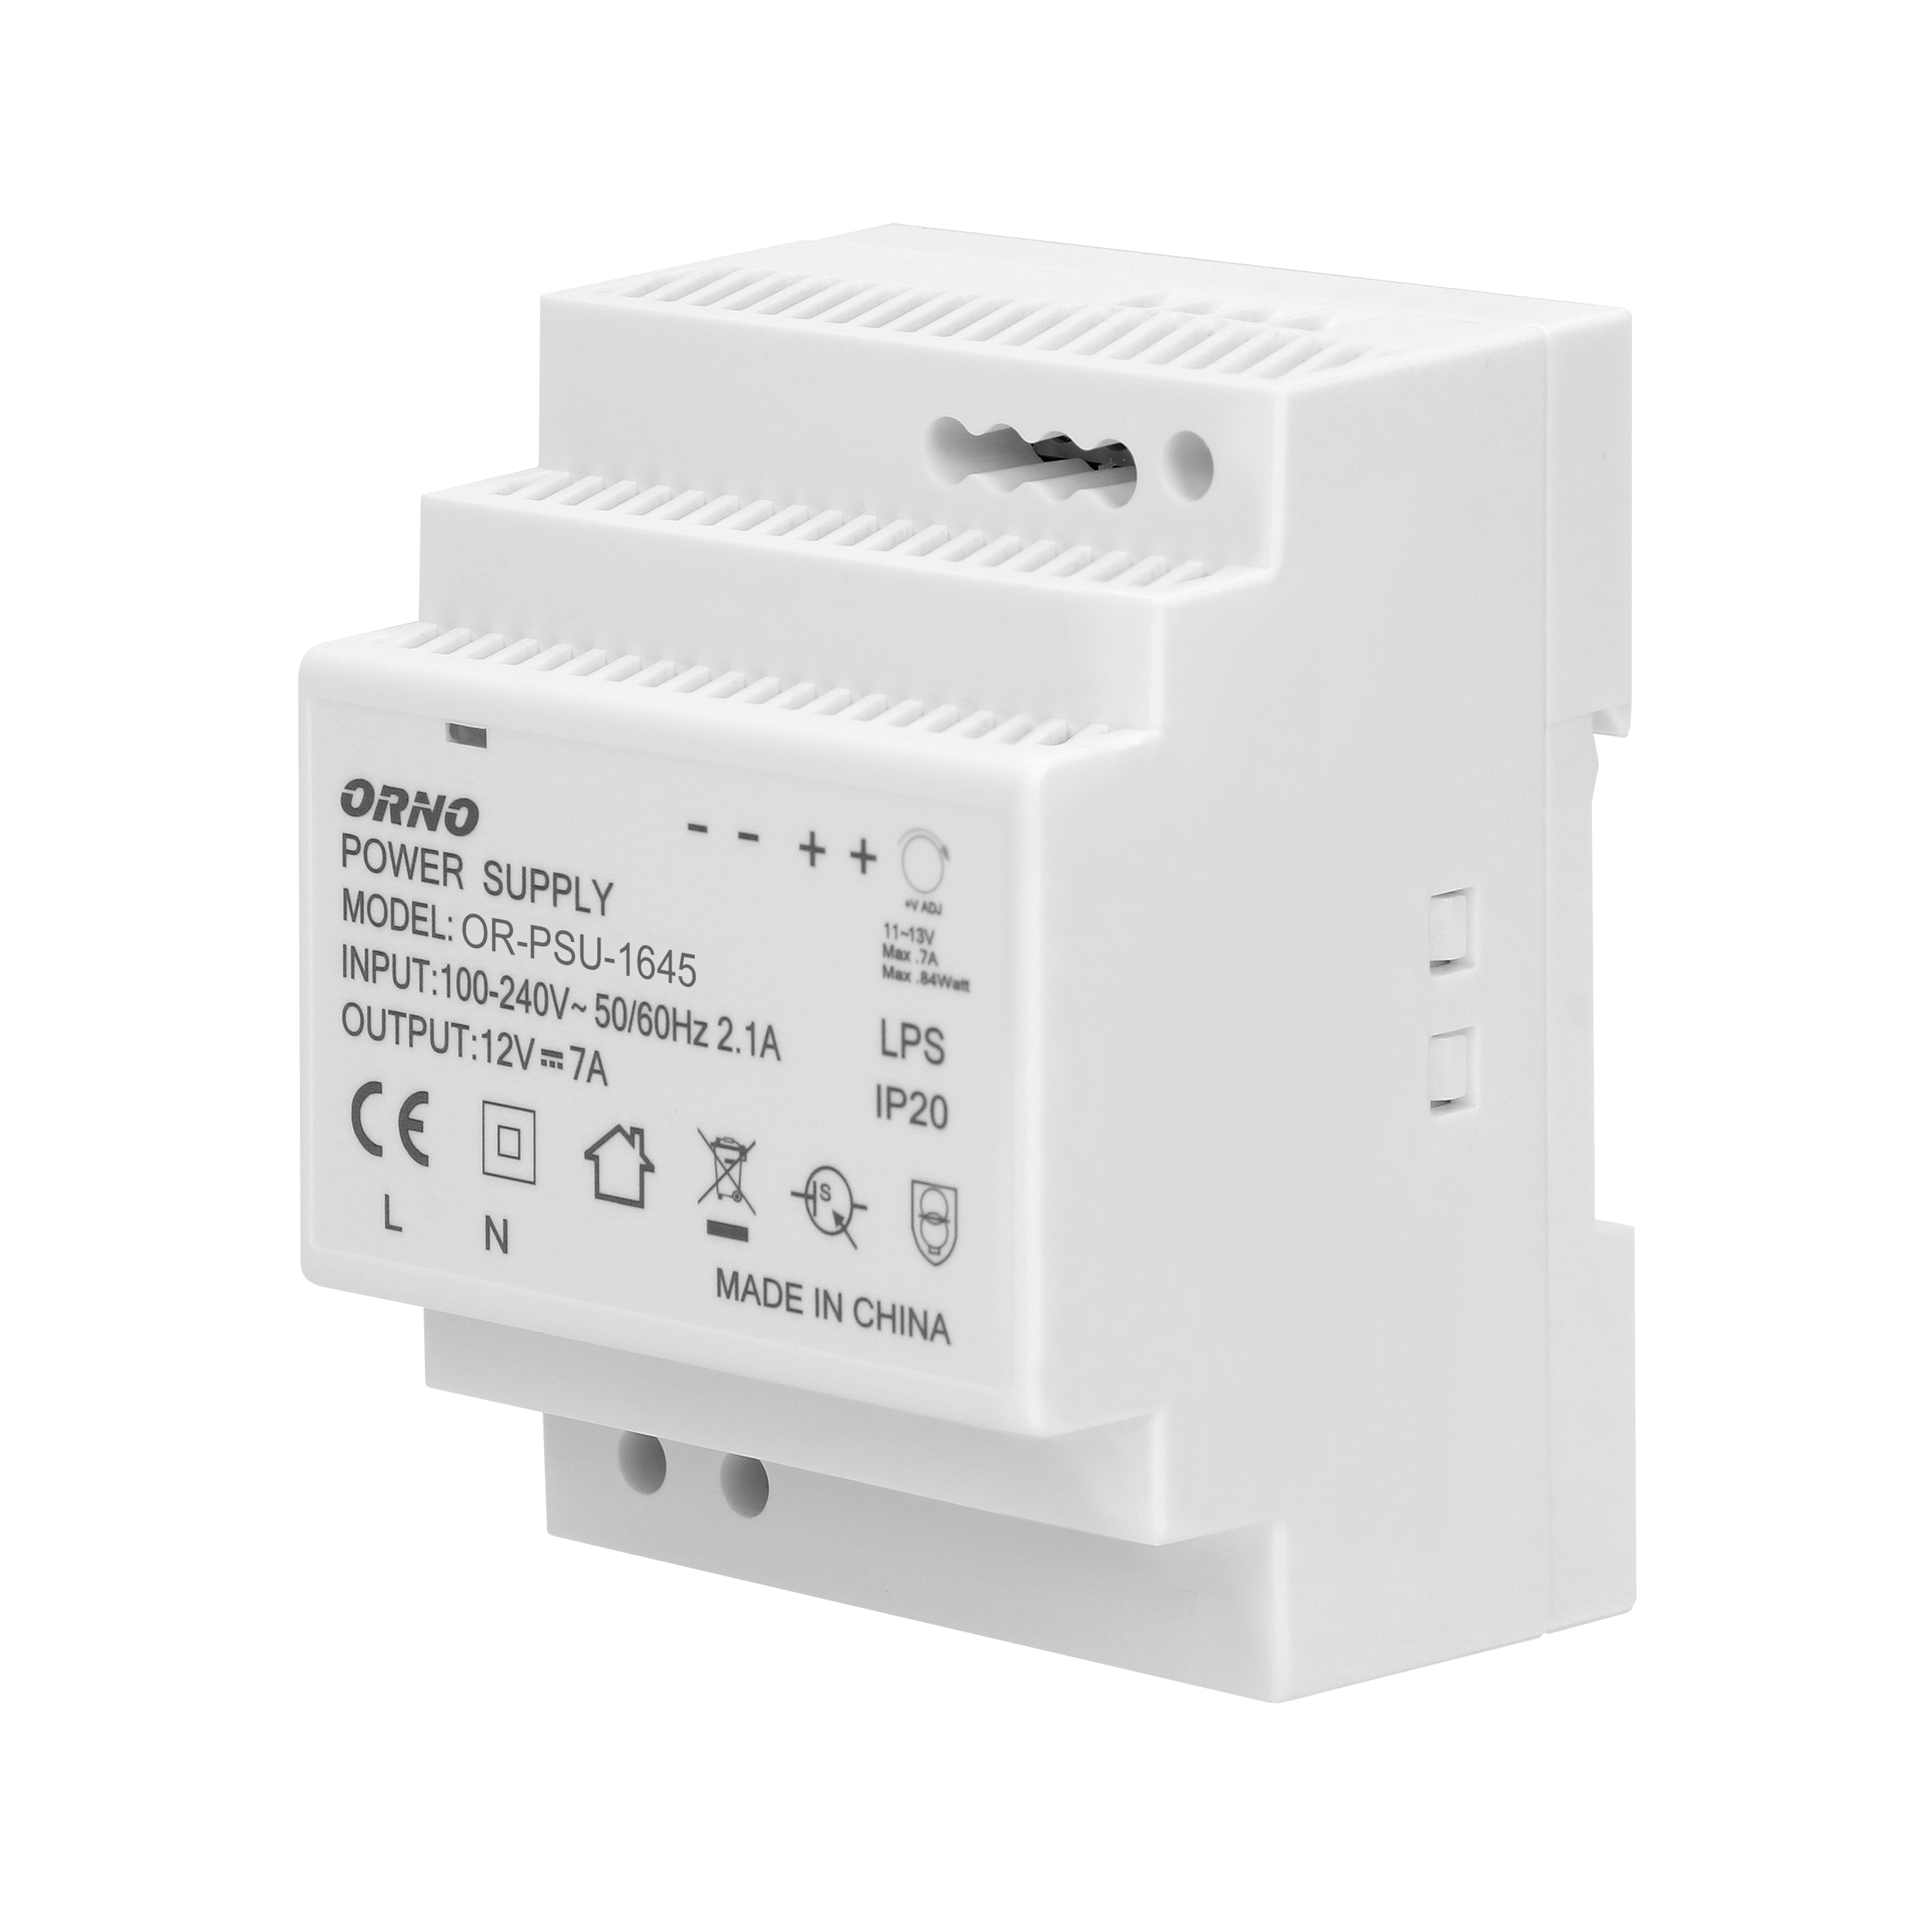 DIN rail power adaptor 12V DC 7A, 84W, width: 4 units